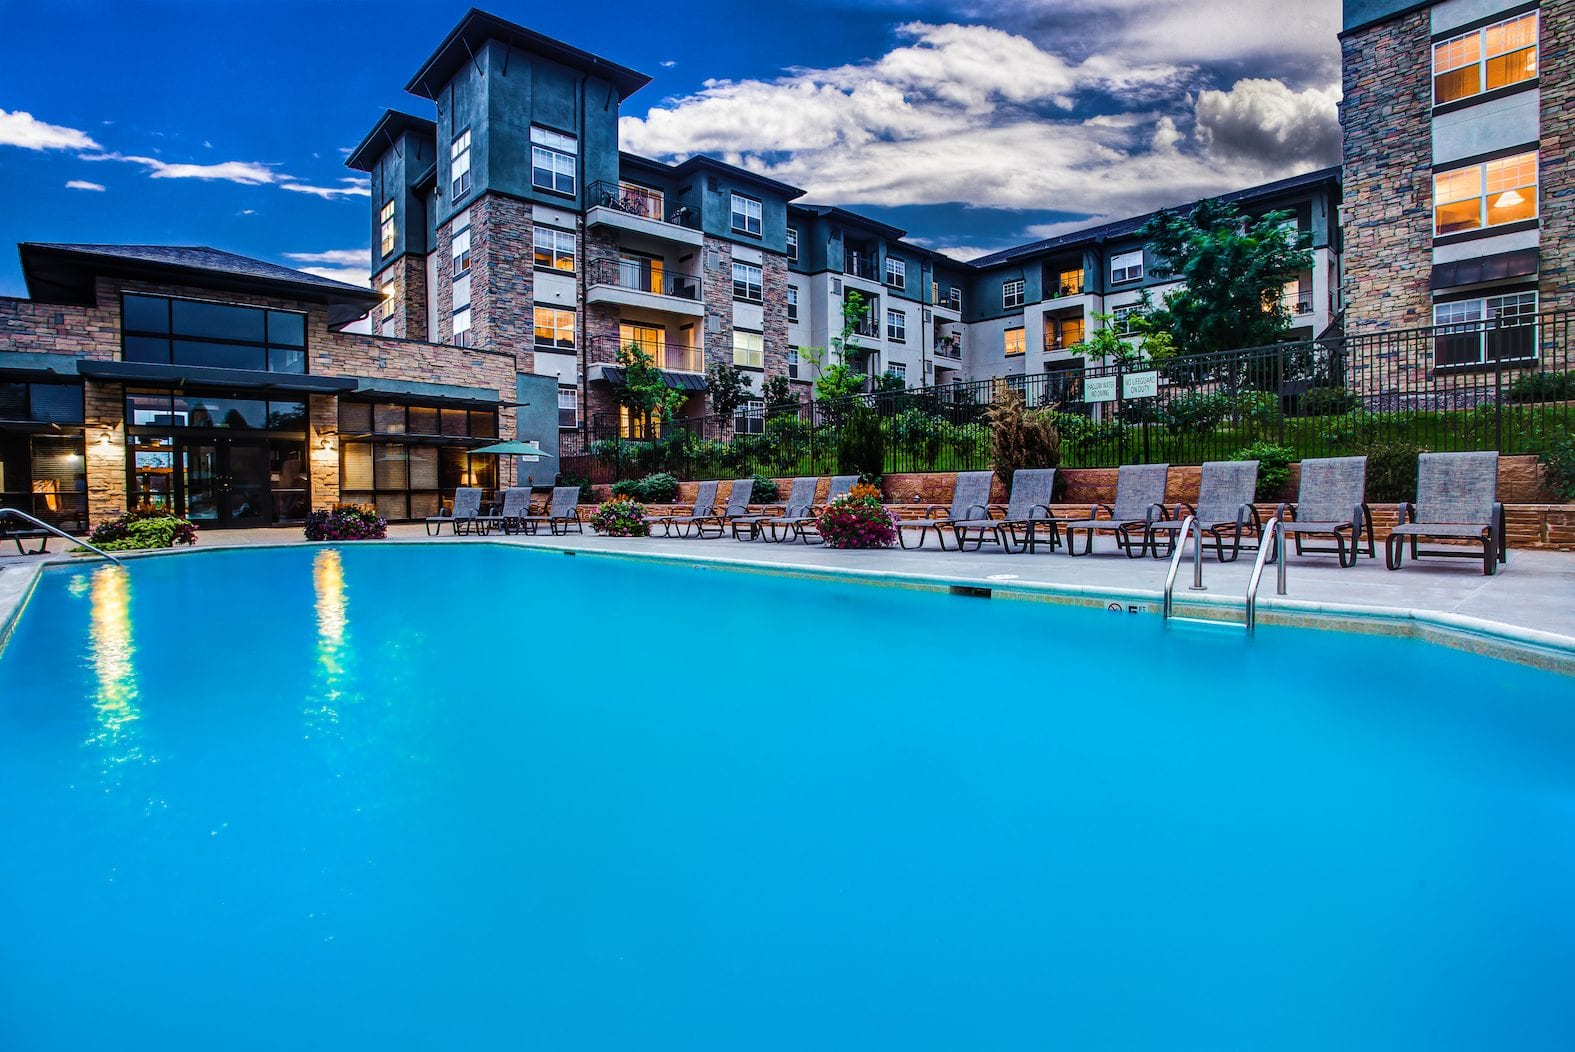 Mission Rock Residential Selected to Manage Summit at Flatirons Luxury Apartment Community in Broomfield Submarket of Denver